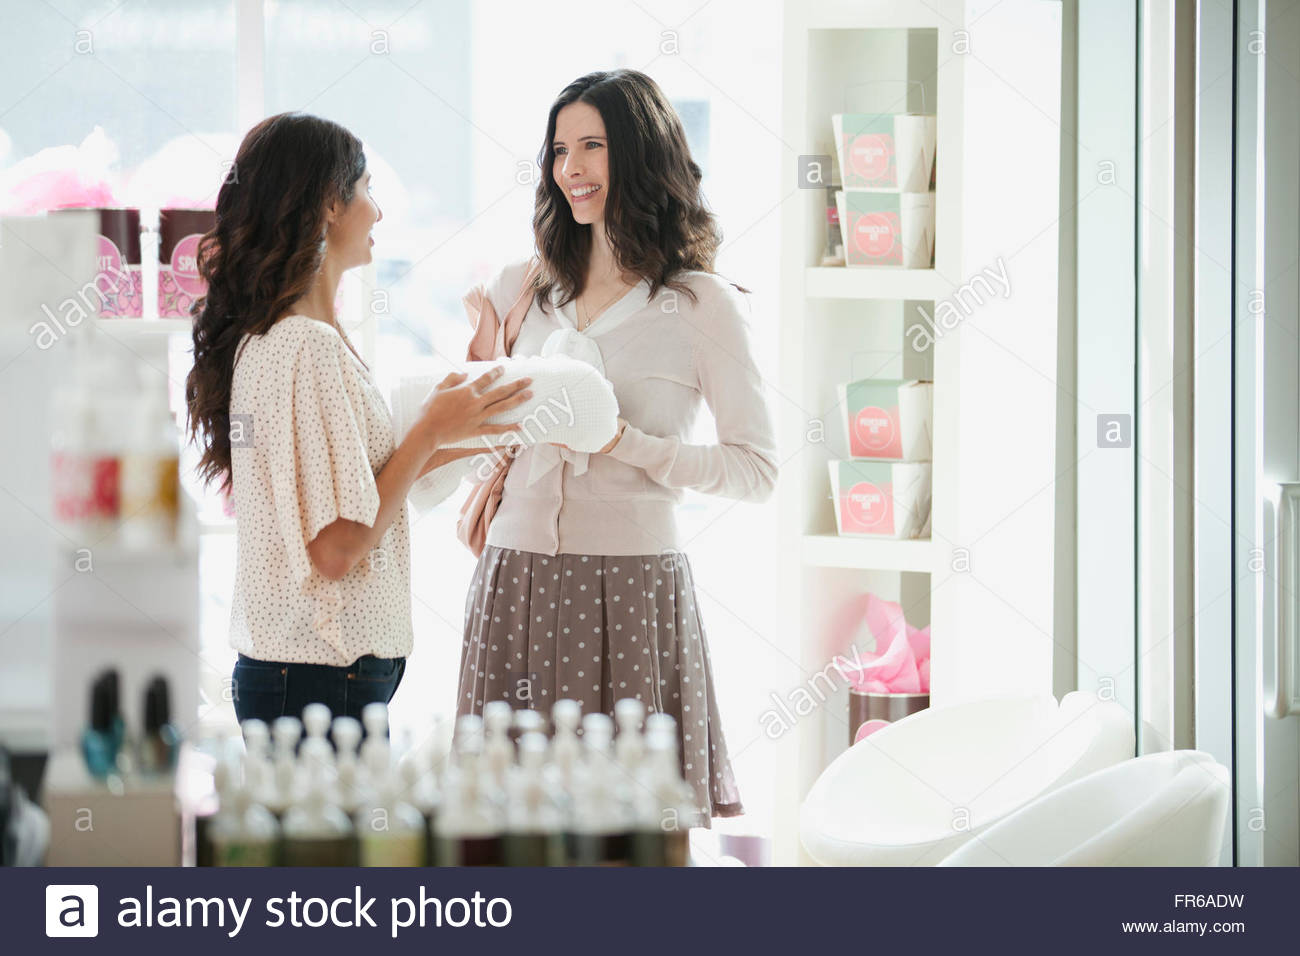 women discussing beauty products at spa - Stock Image